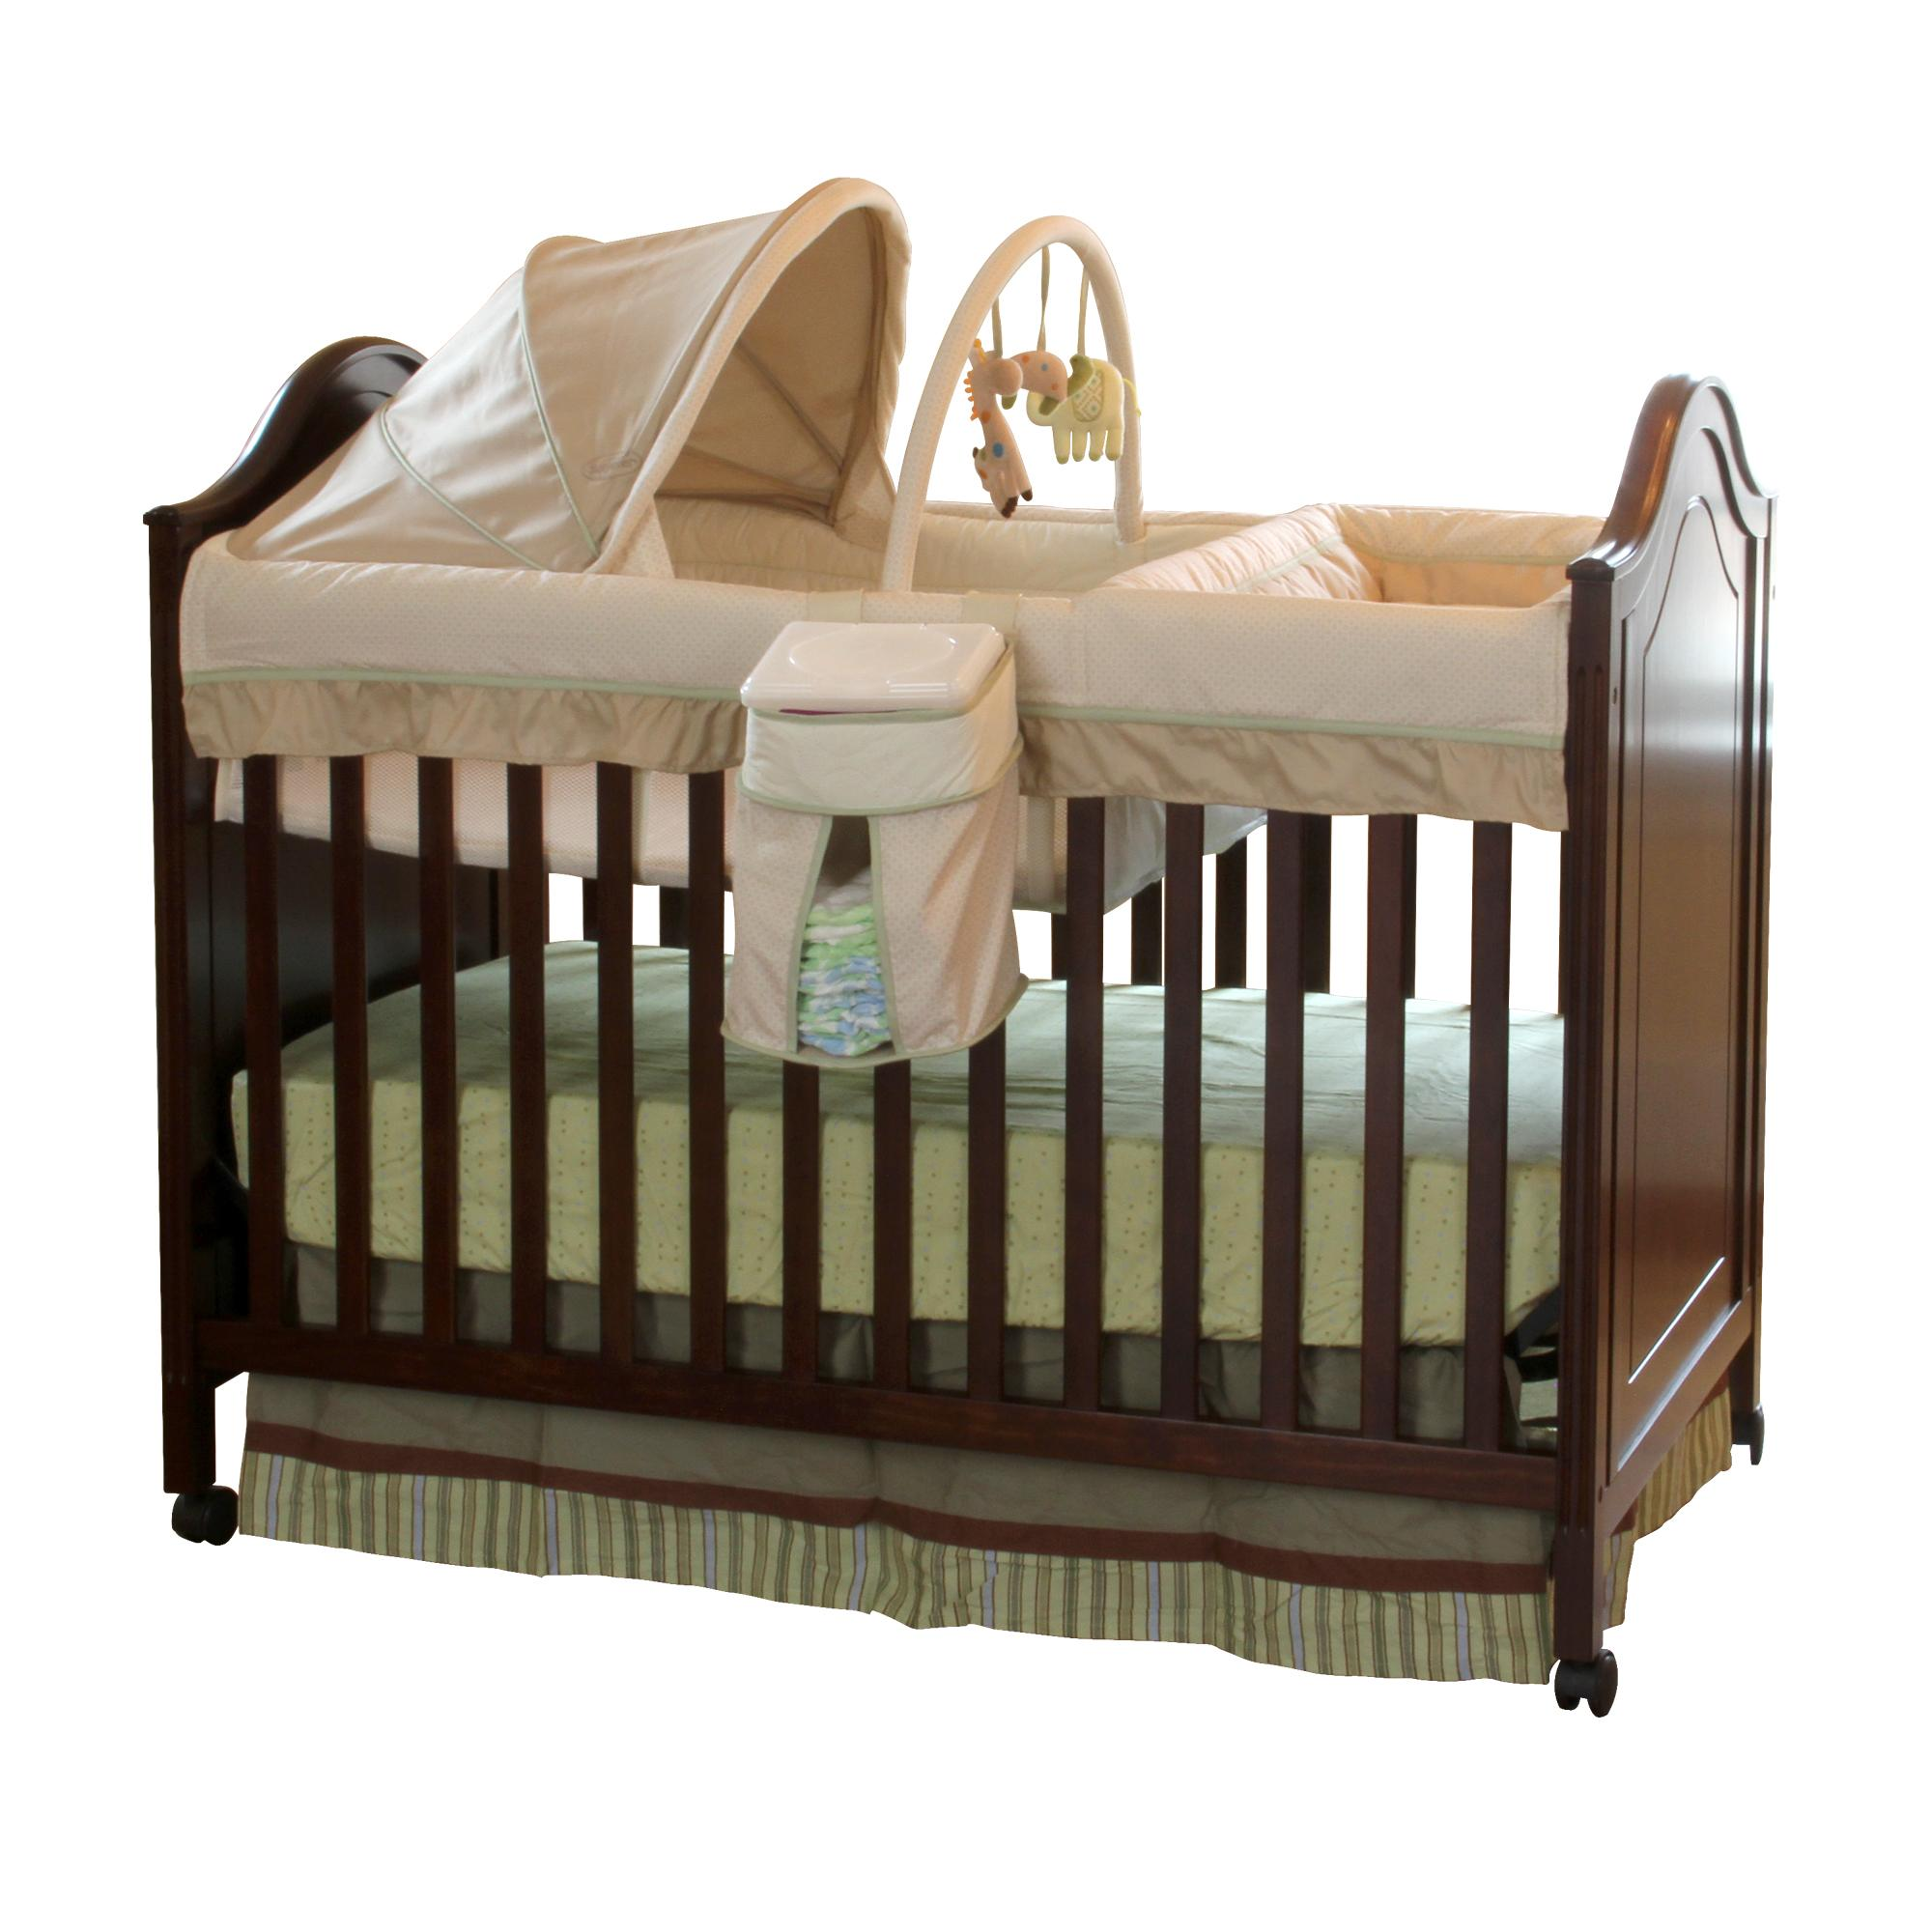 airplane mattress baby the babies canada cribs bedding crib on themed l us porta eye r easy